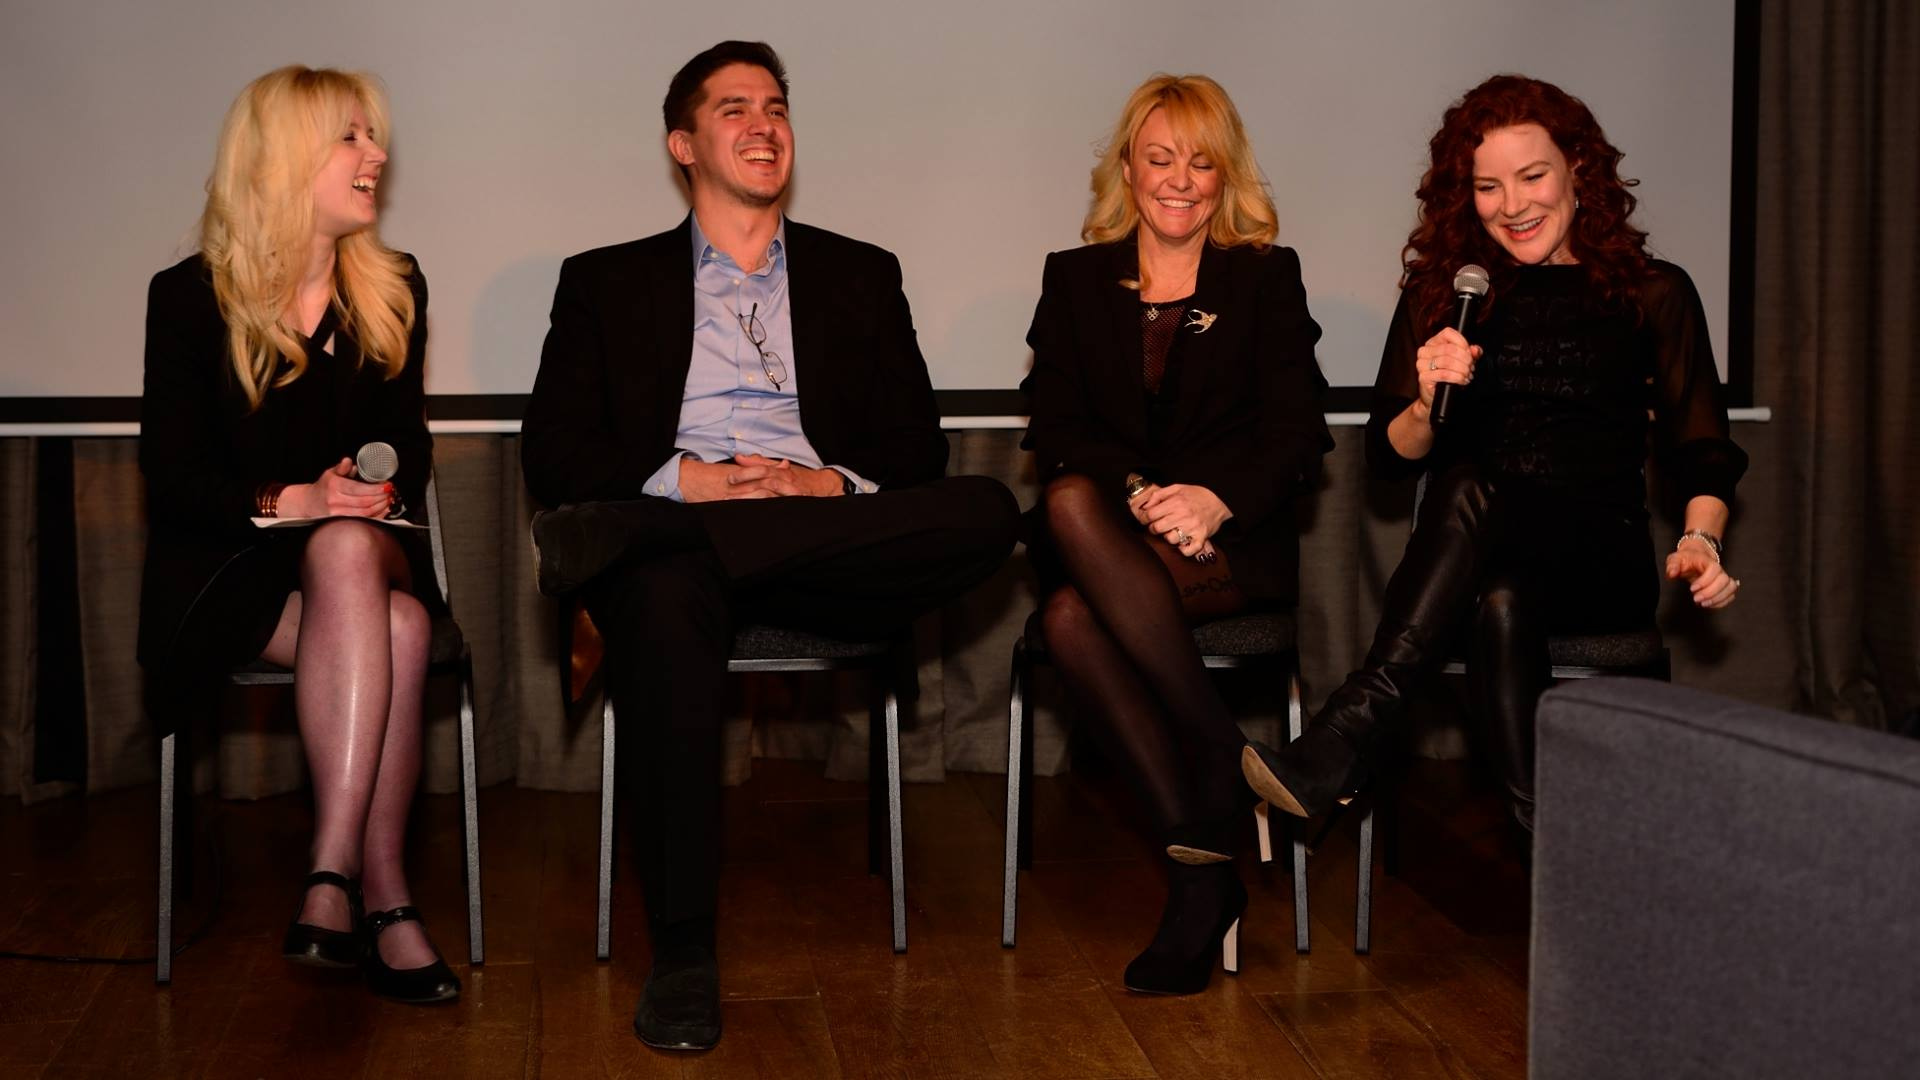 Q&A at the Century Club in London (L to R: The Film Doctor Rebekah Louisa Smith, director Sasha Krane, actress/producer Sarina Taylor, actress/writer/producer Katharine McEwan.